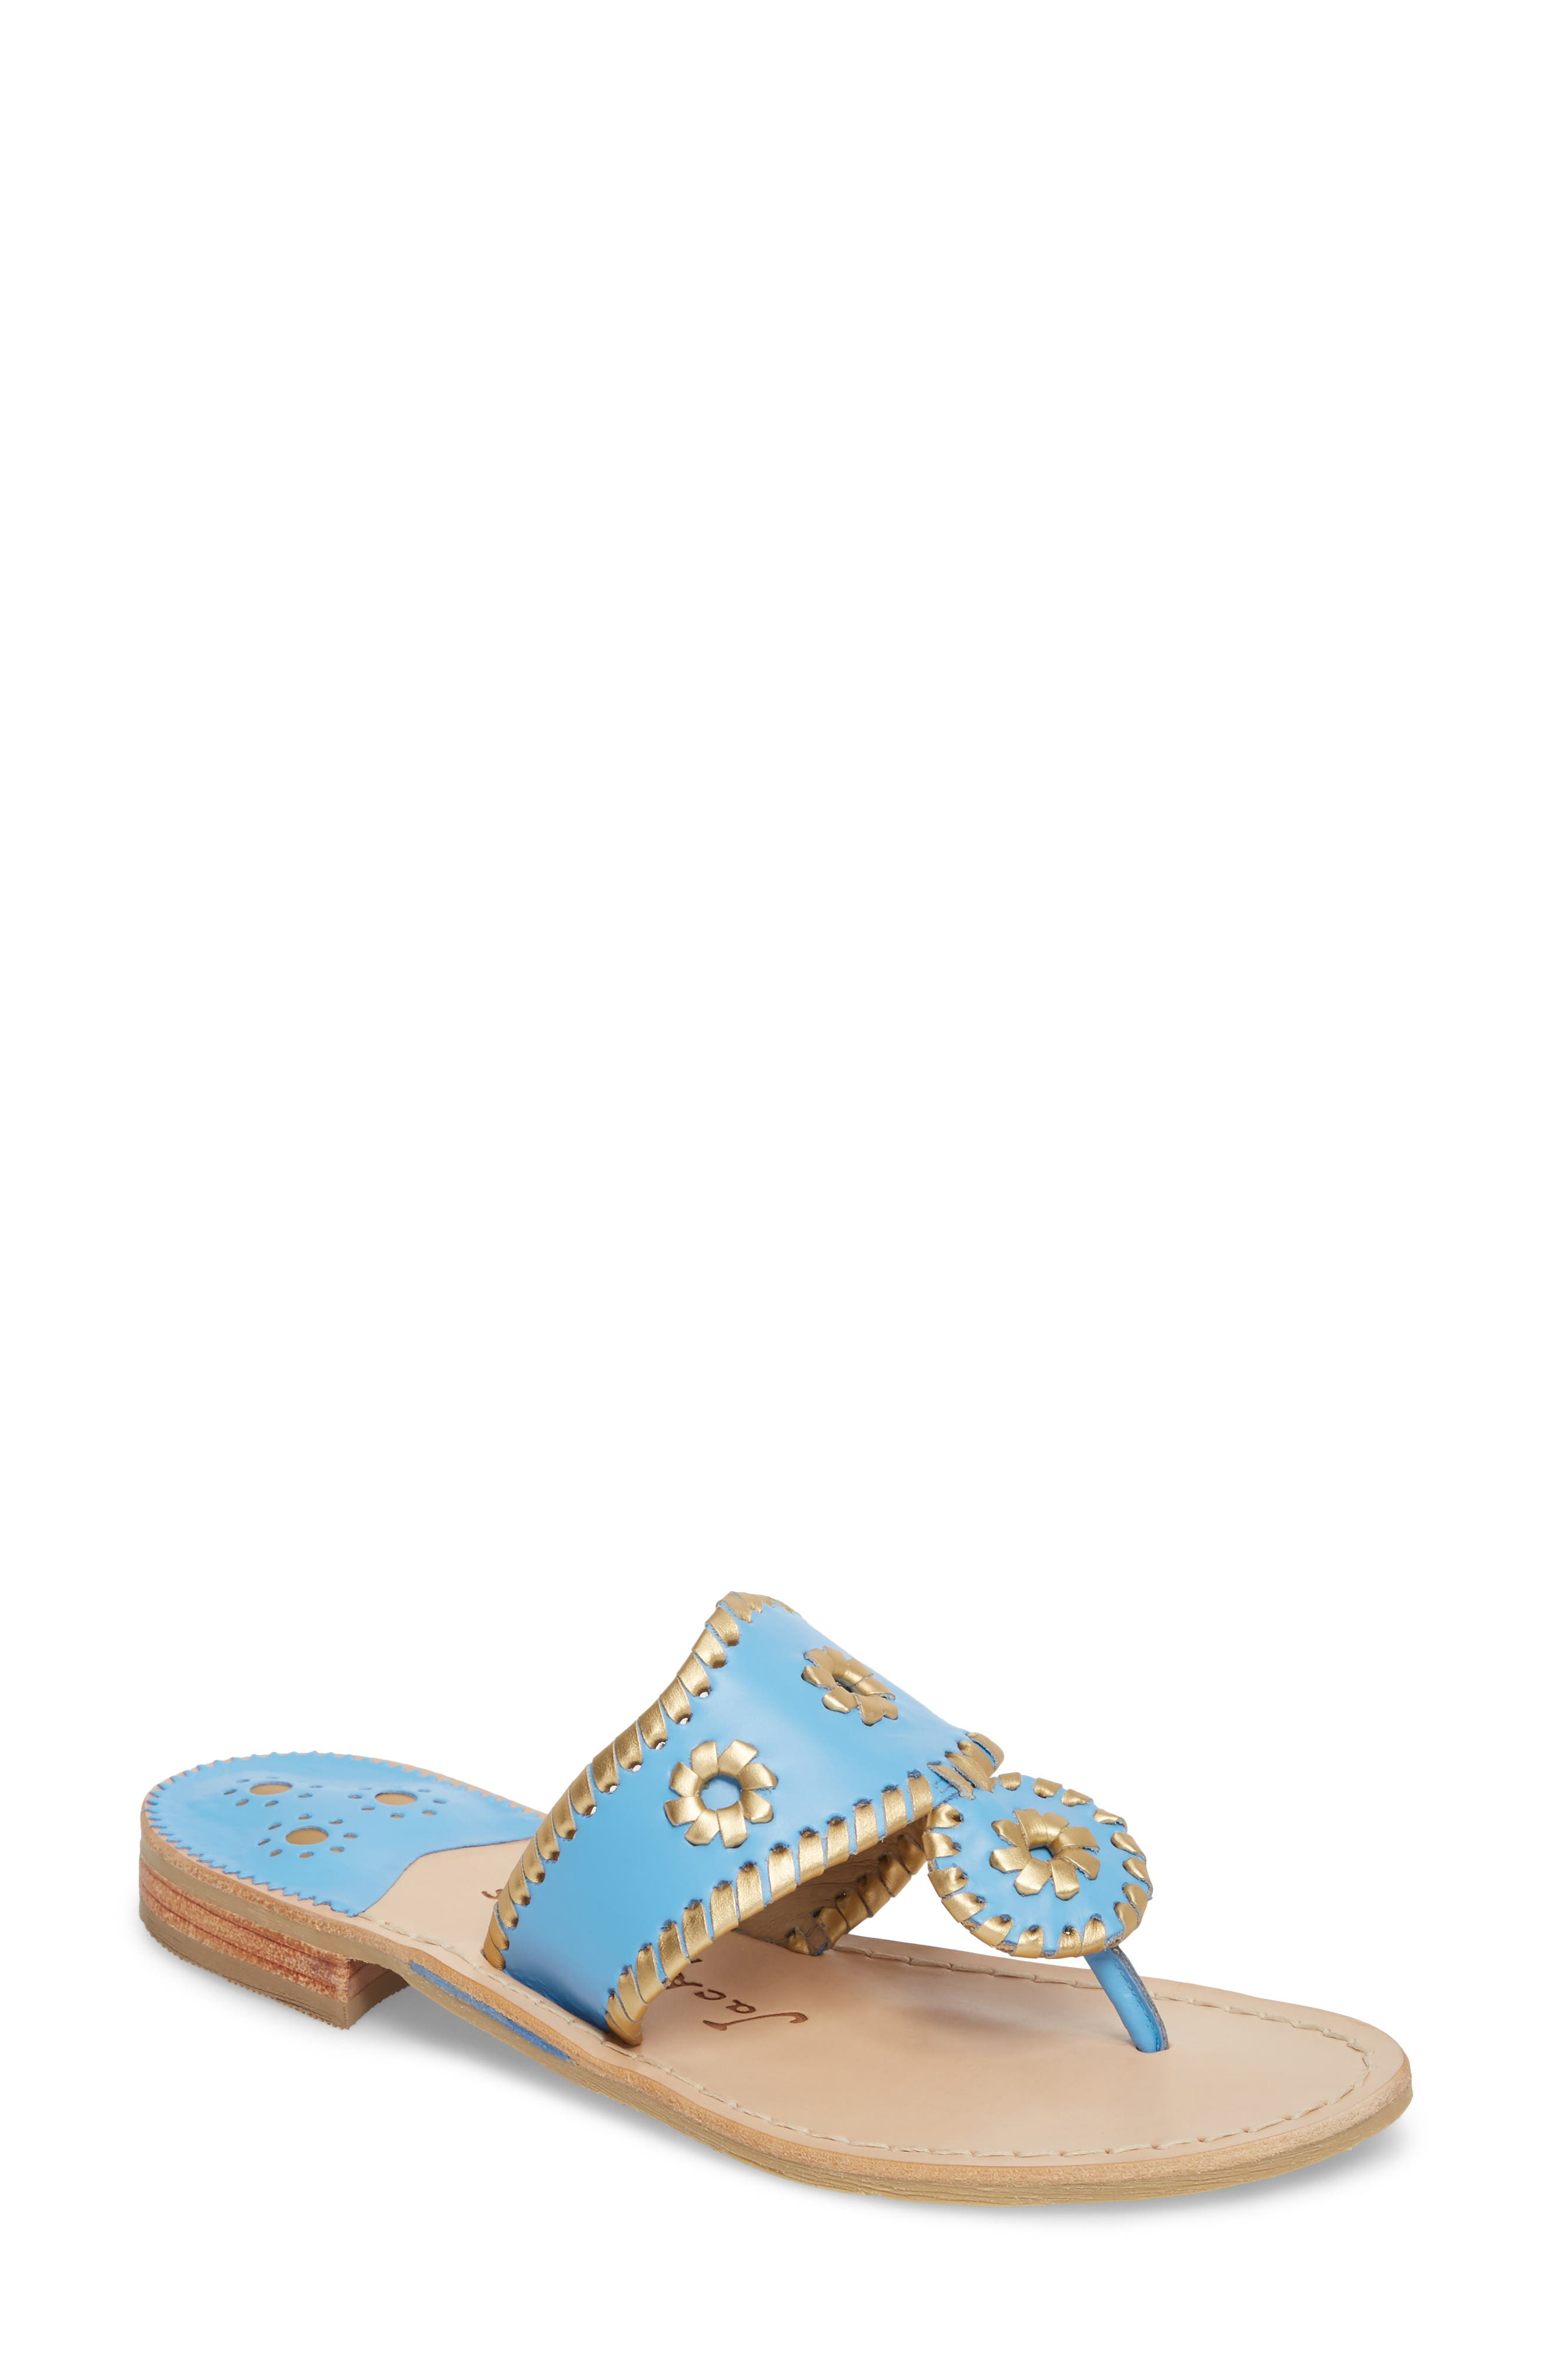 Hollis Flat Sandal,                         Main,                         color, French Blue Leather